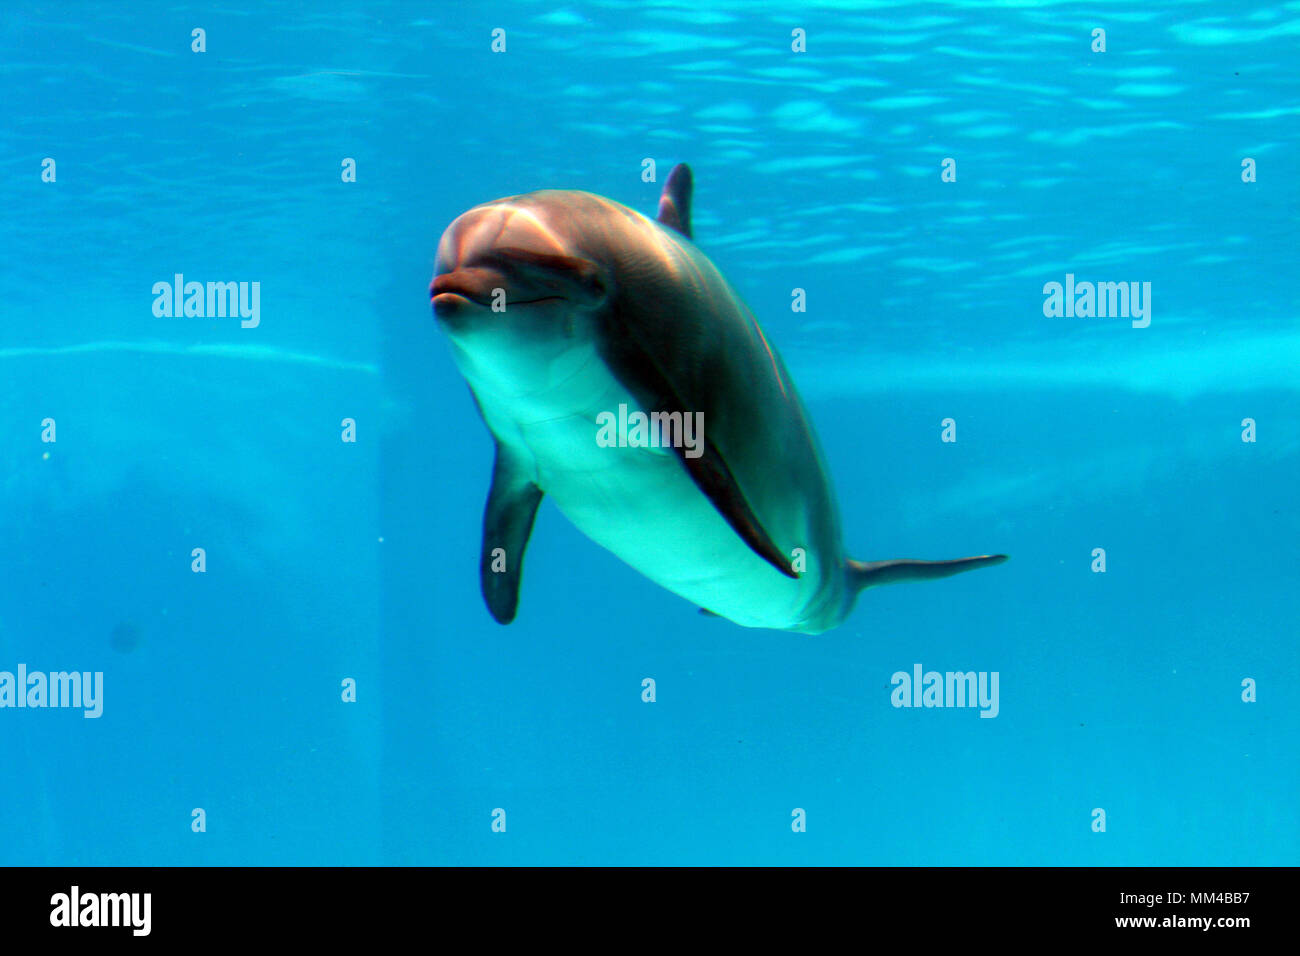 dolphins show at the riccione aquarium in italy Stock Photo